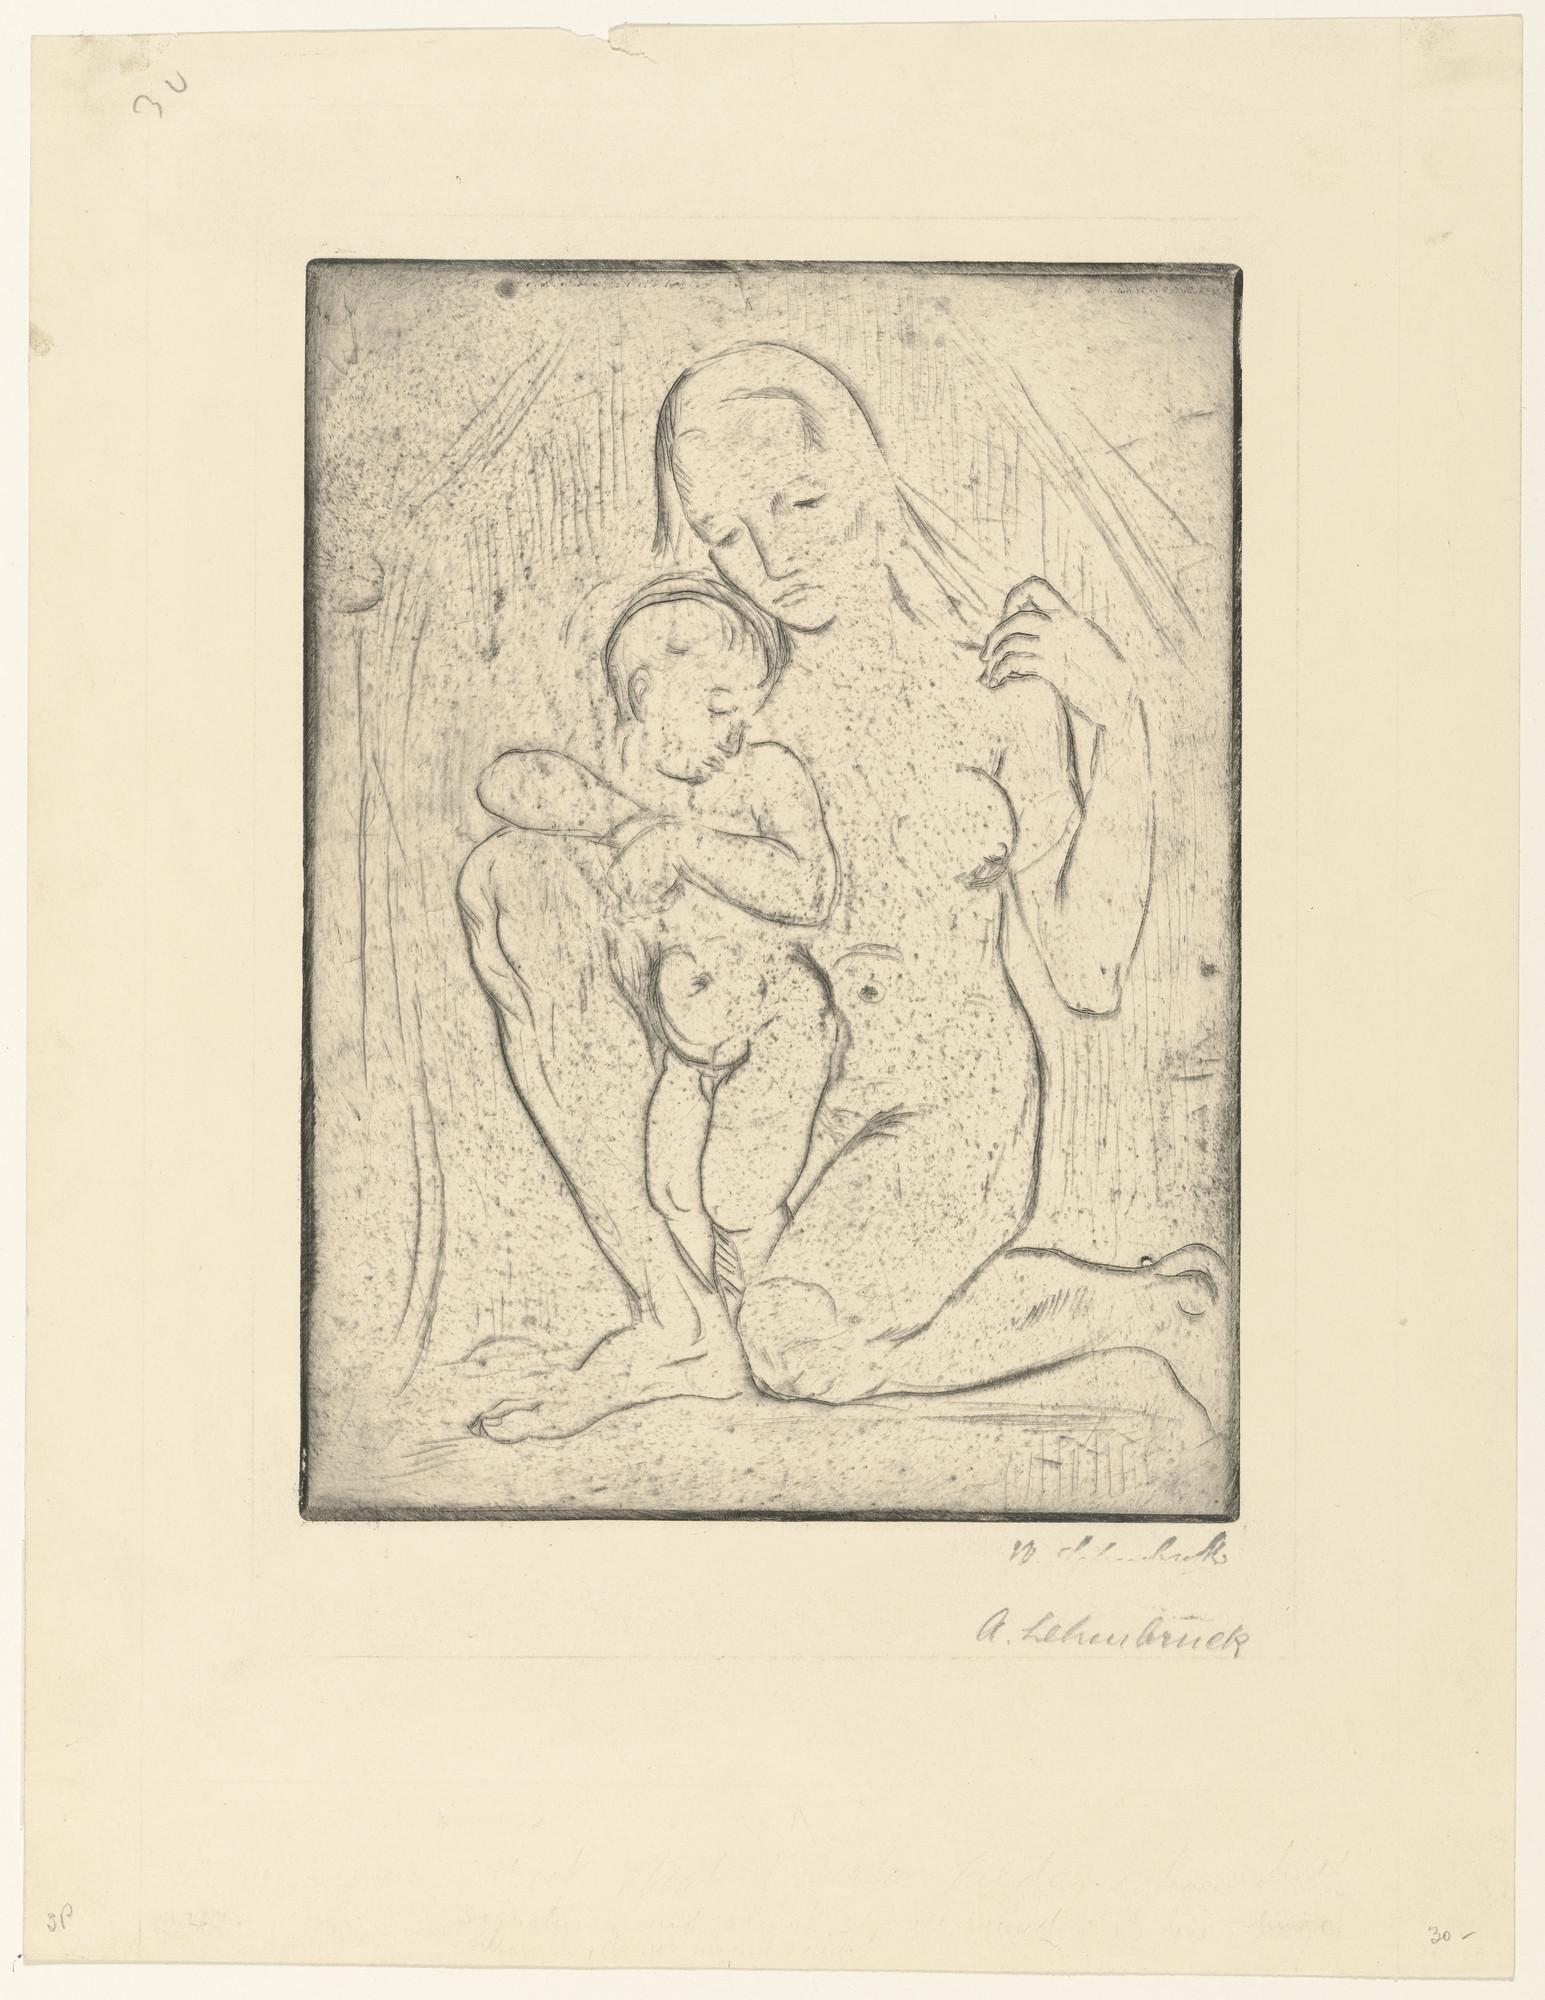 Wilhelm Lehmbruck. Mother and Child (kneeling, full) [Mutter und Kind (kniend ganz)]. (1910, printed 1920)